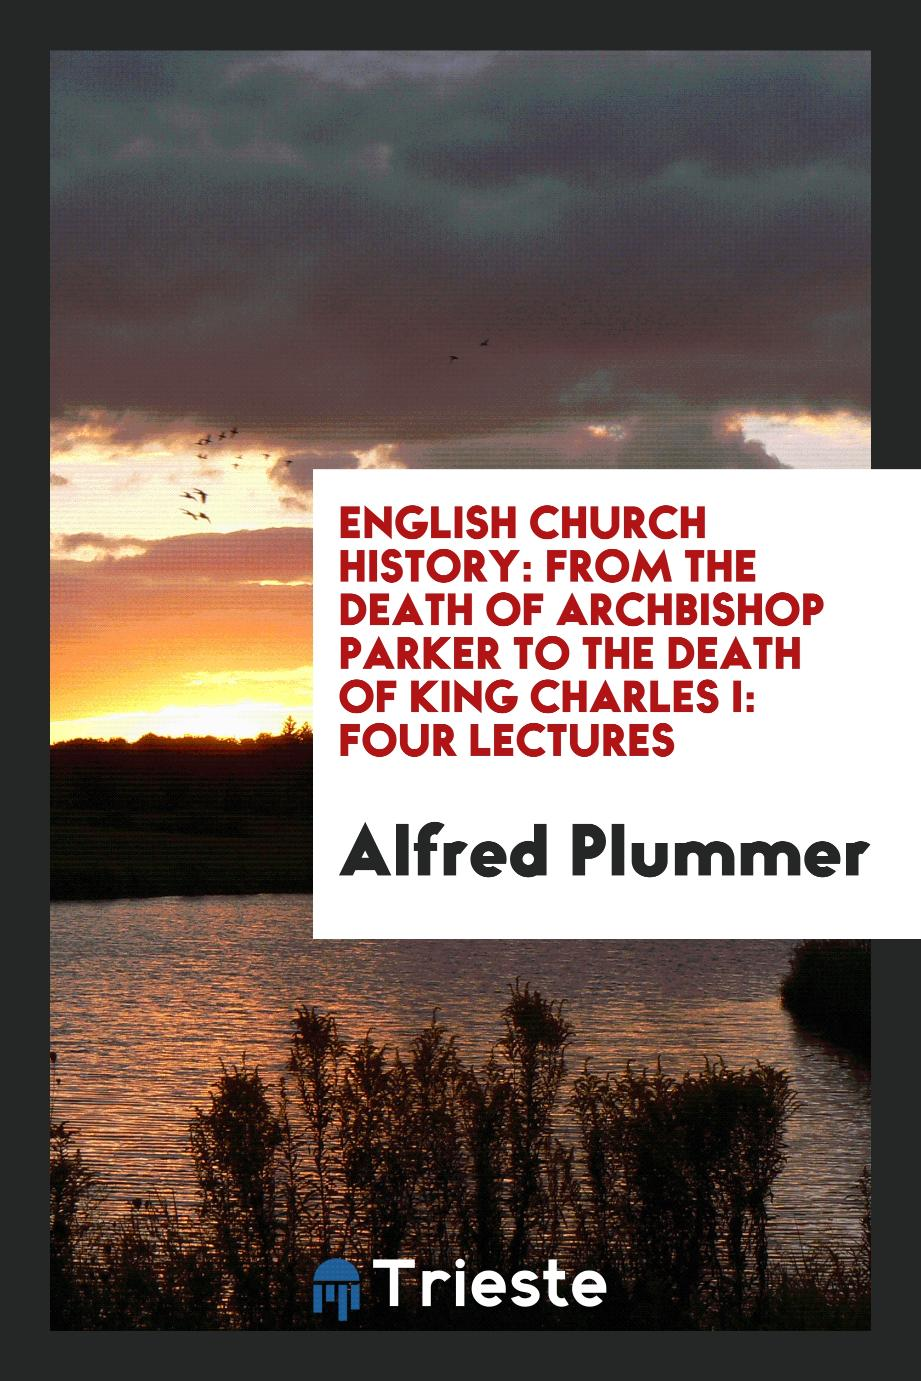 English Church History: From the Death of Archbishop Parker to the Death of King Charles I: Four Lectures